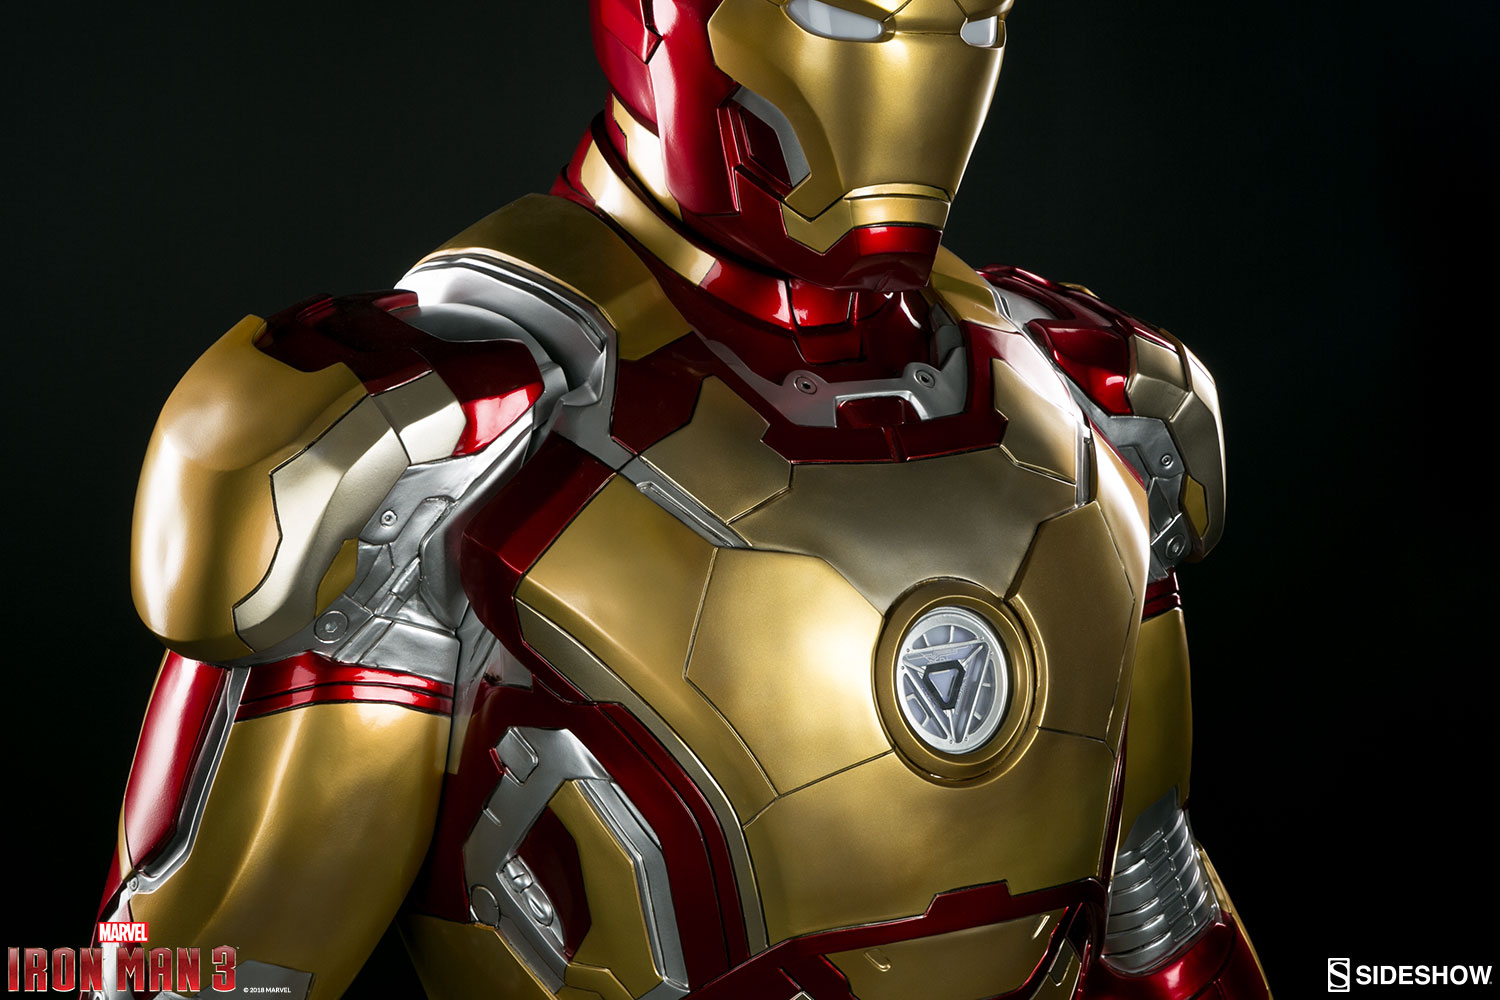 Iron man 3 iron man mark 42 life size sideshow collectibles statue movie mania - Image de iron man ...